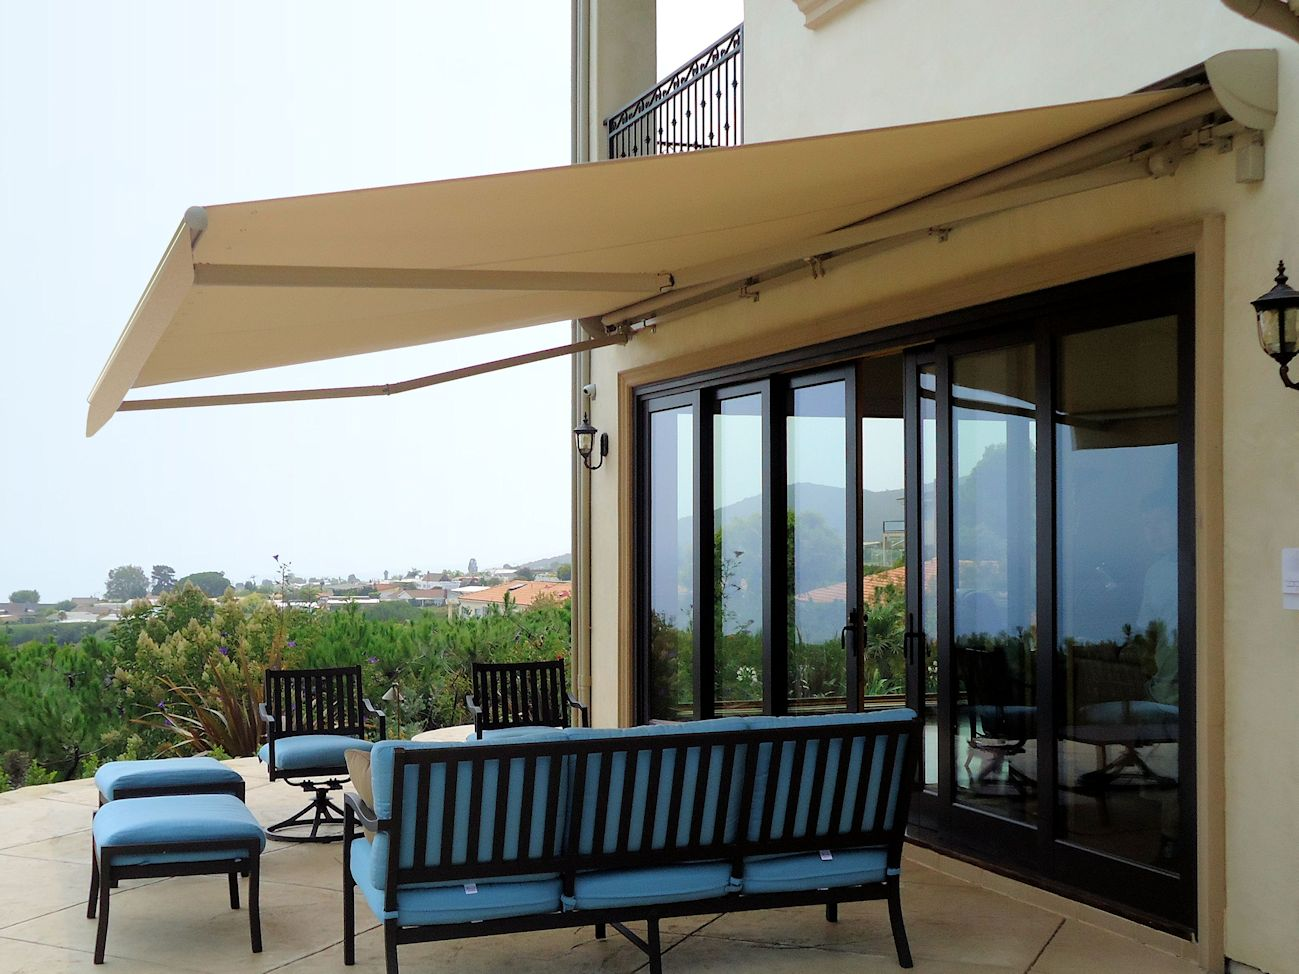 retractable awnings CSZKYYD